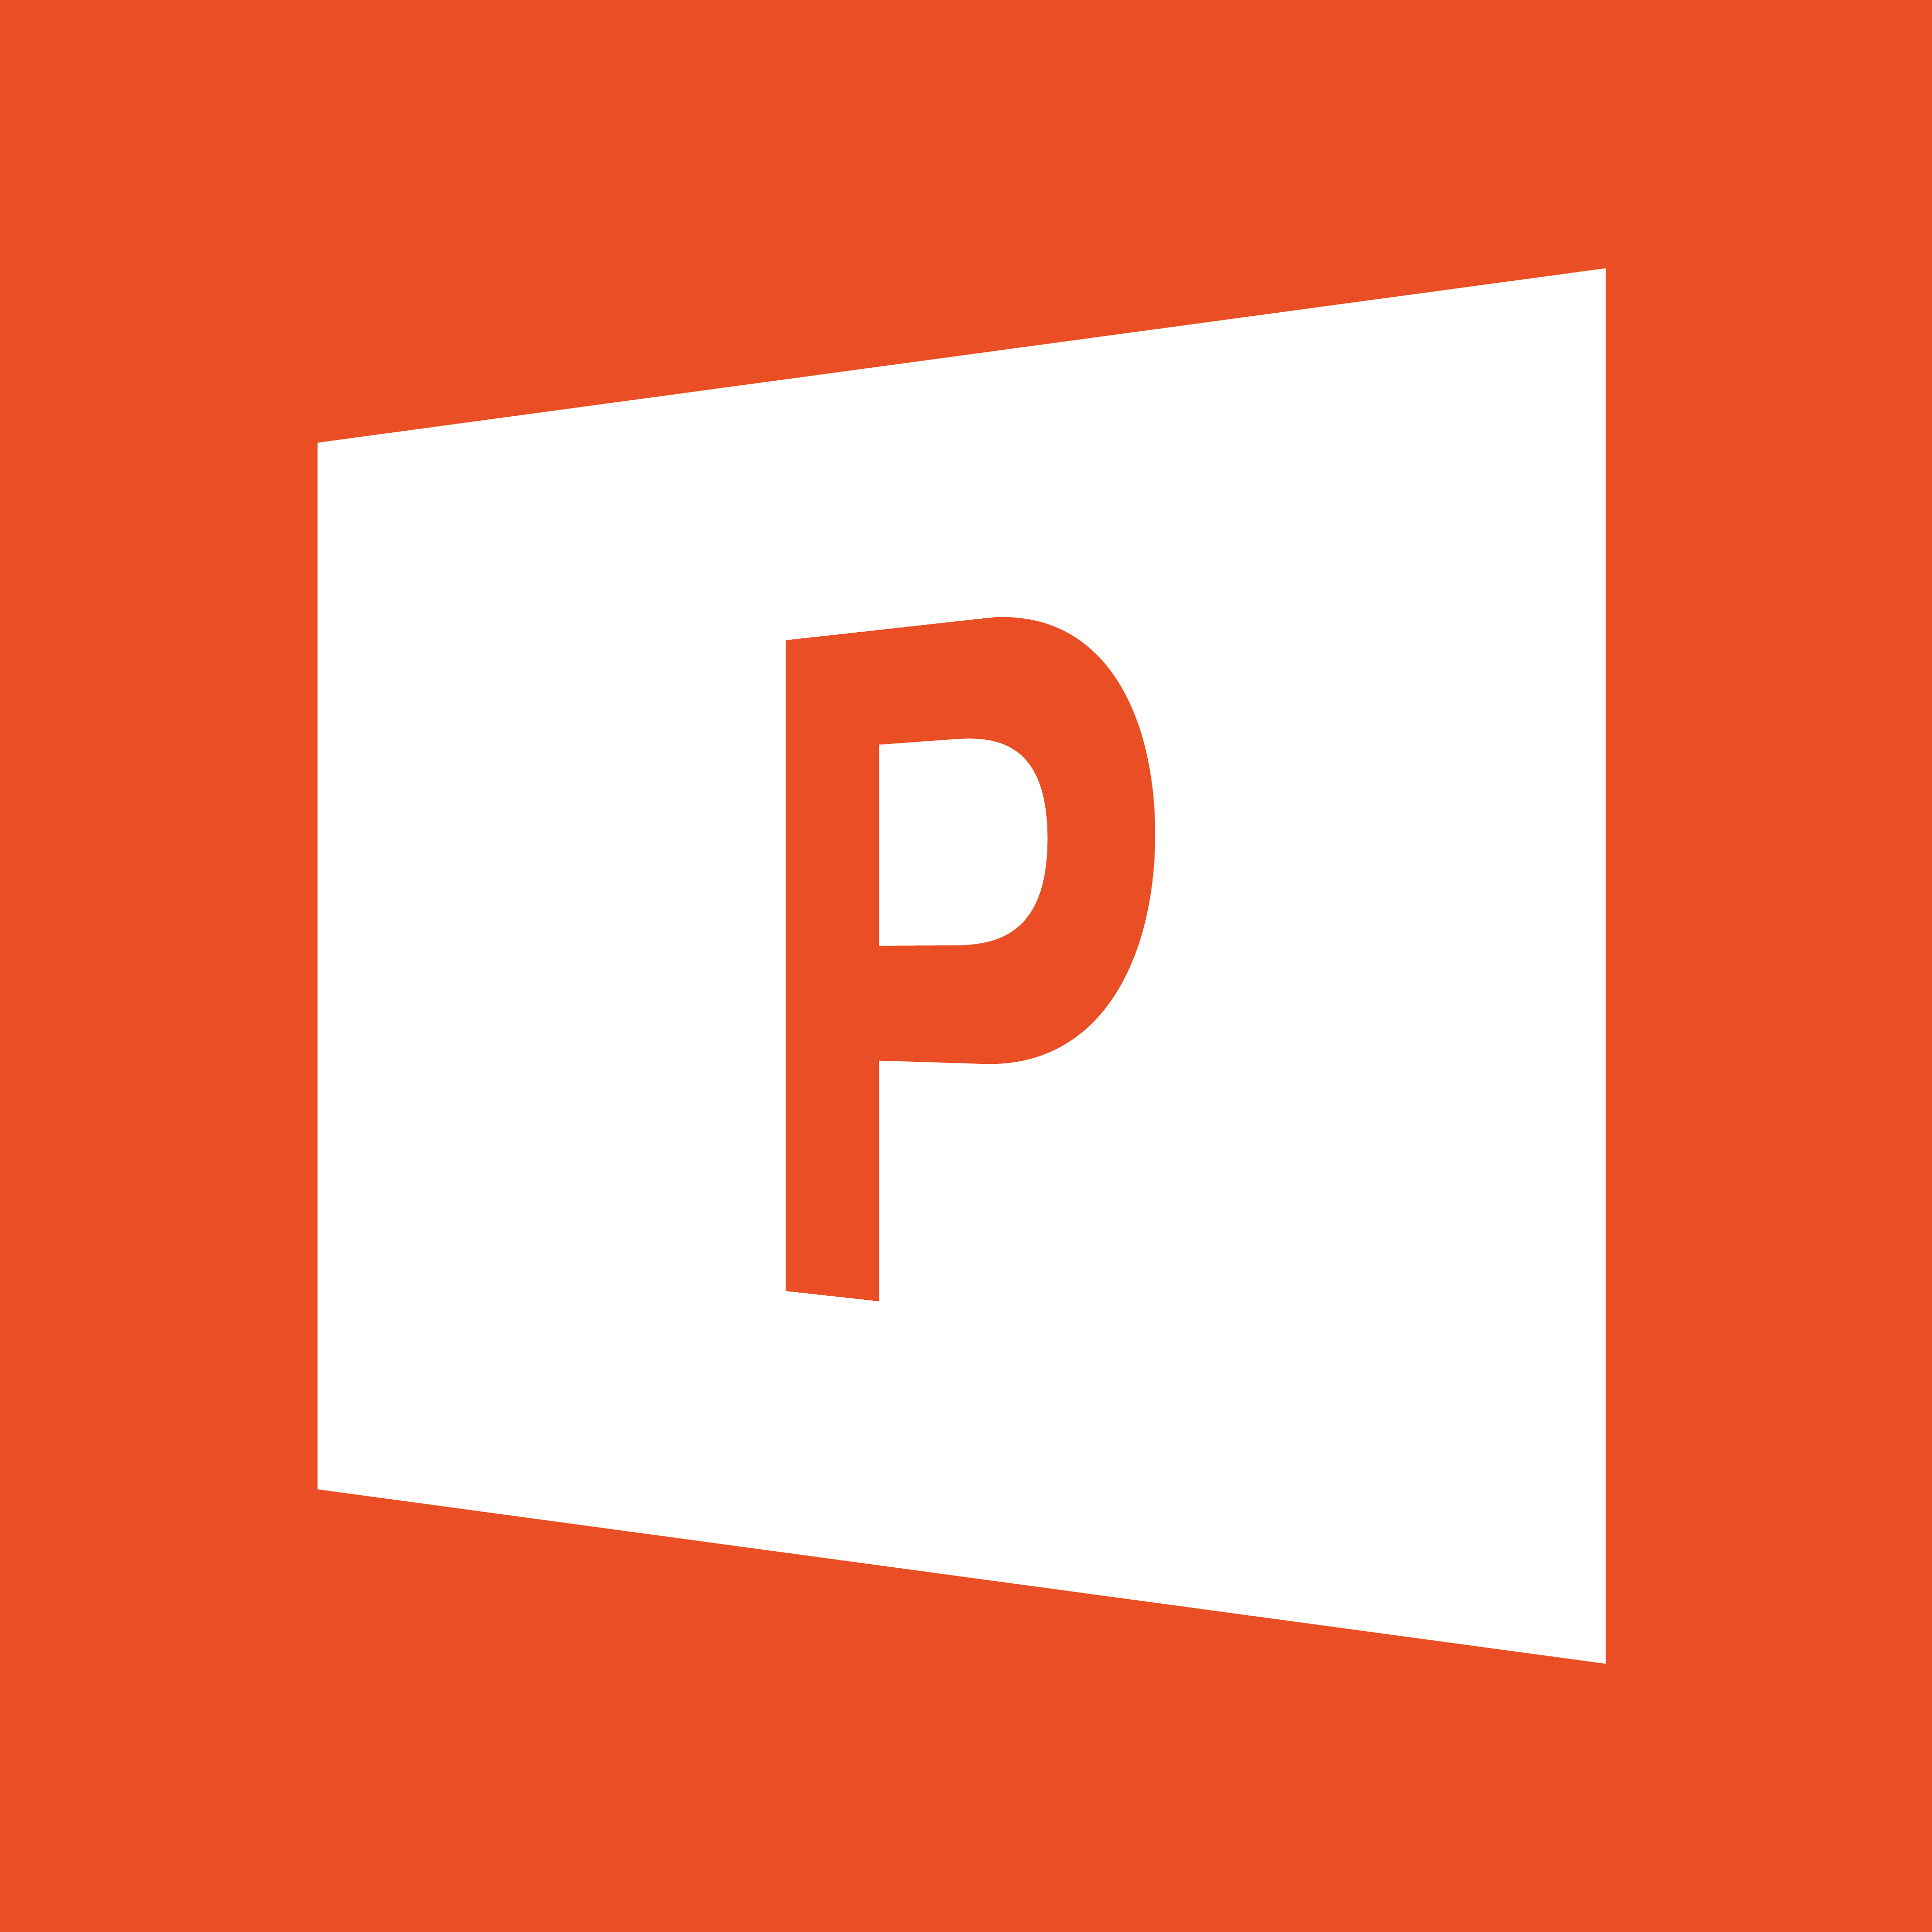 Microsoft Office PowerPoint icon #43946.